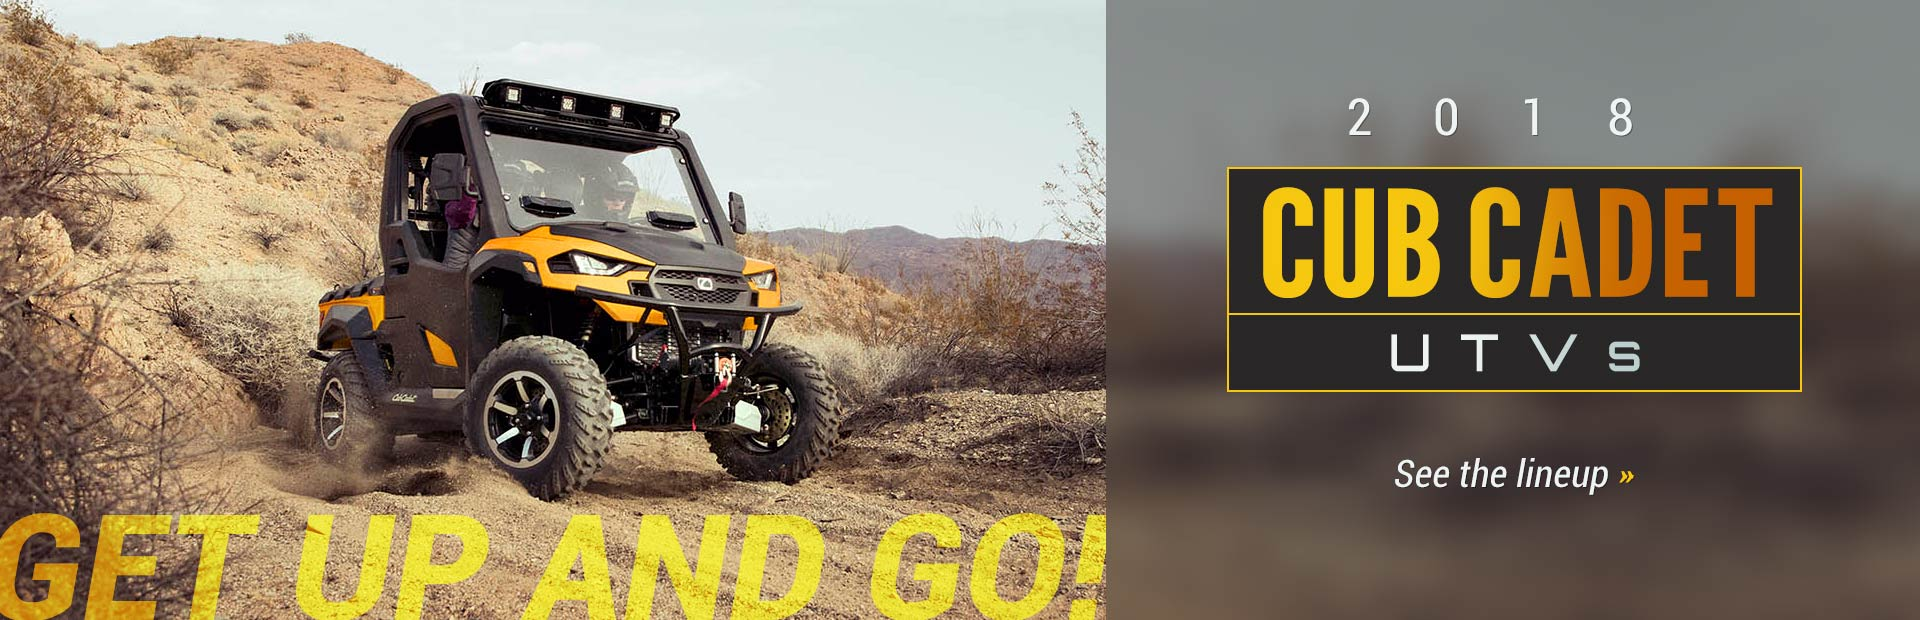 2018 Cub Cadet UTVs: Click here to view the lineup.